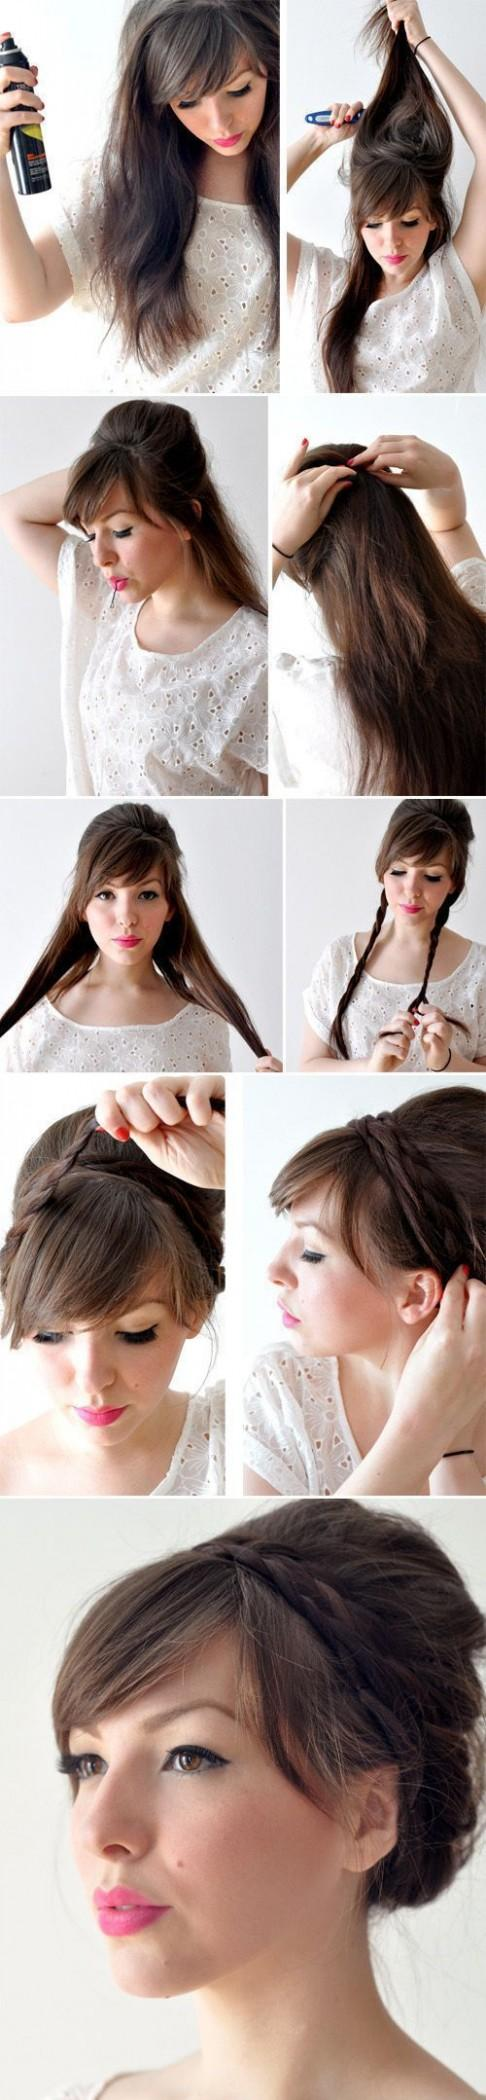 creative_hairstyles_that_you_can_easily_do_at_home_640_high_15